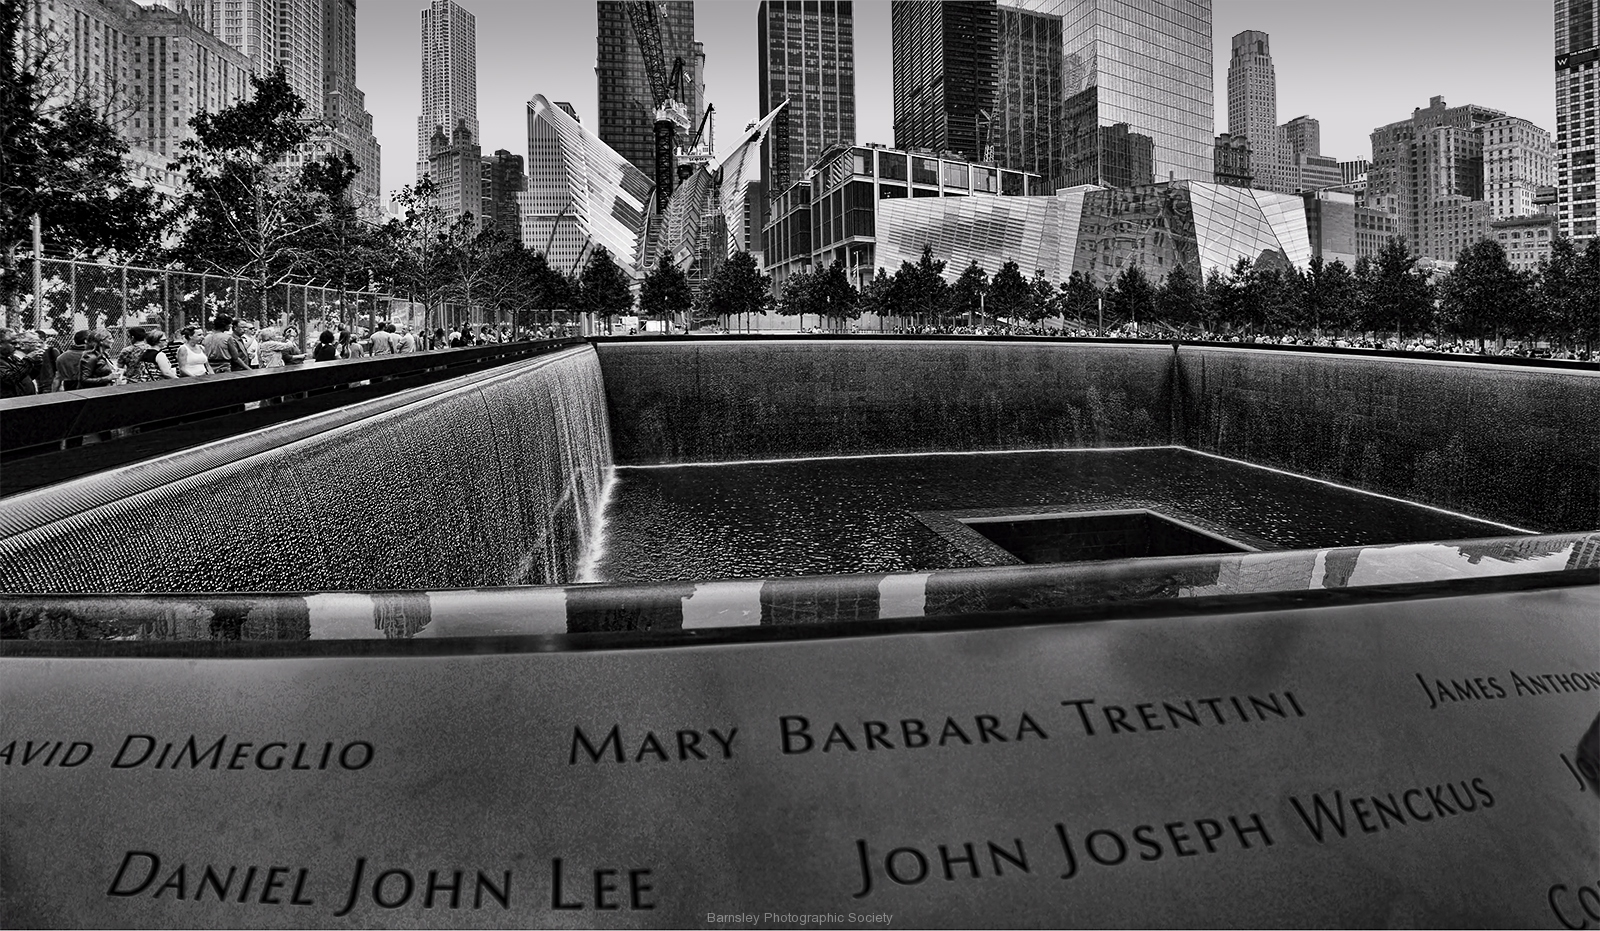 Ground Zero Memorial by Dave Rippon